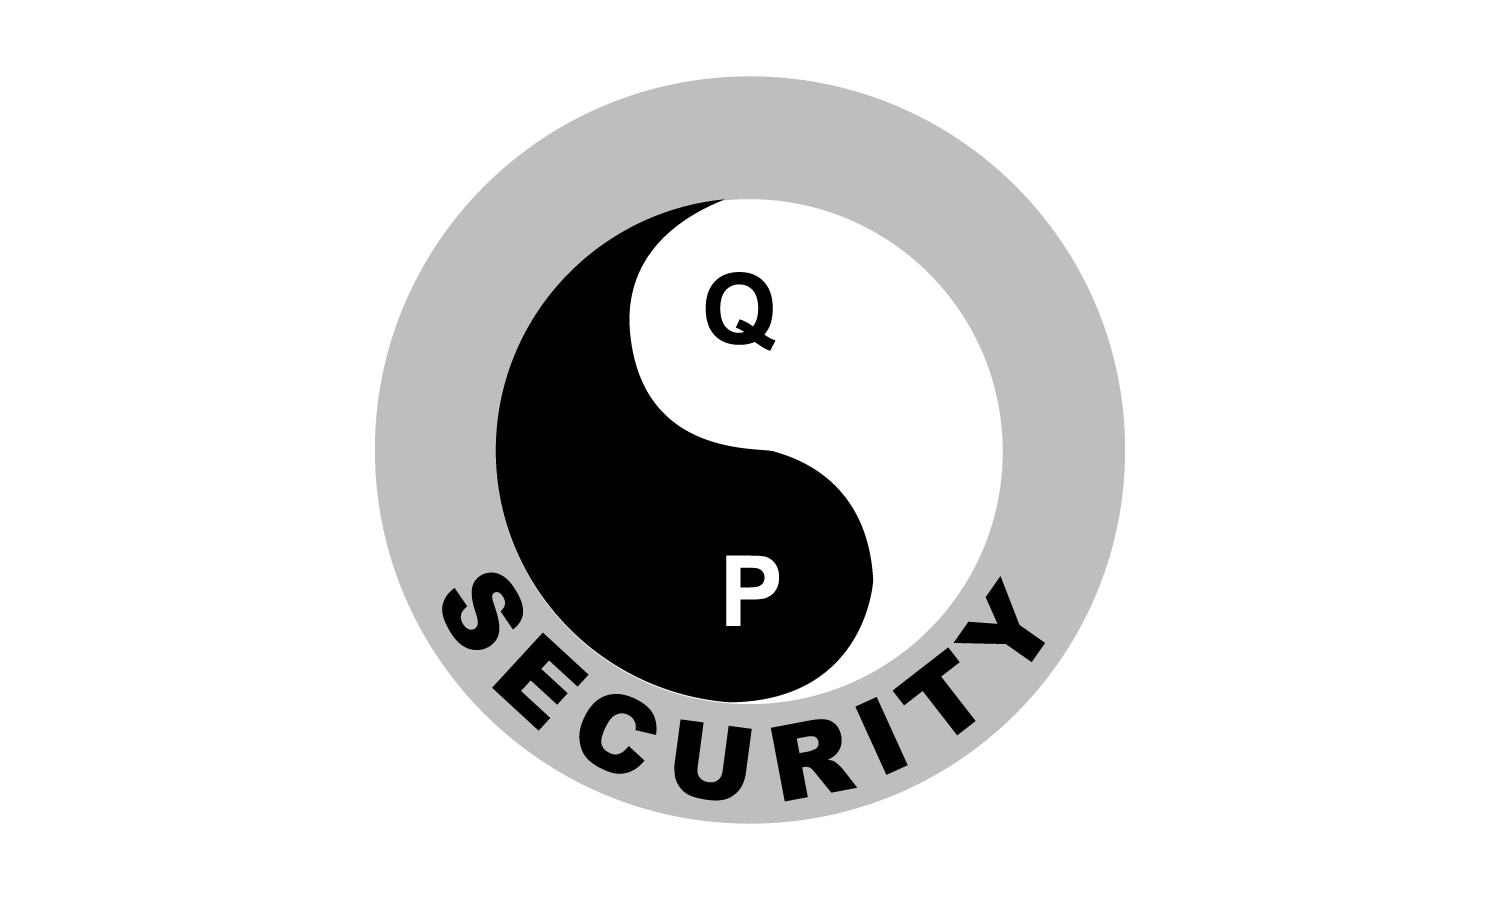 QP Security